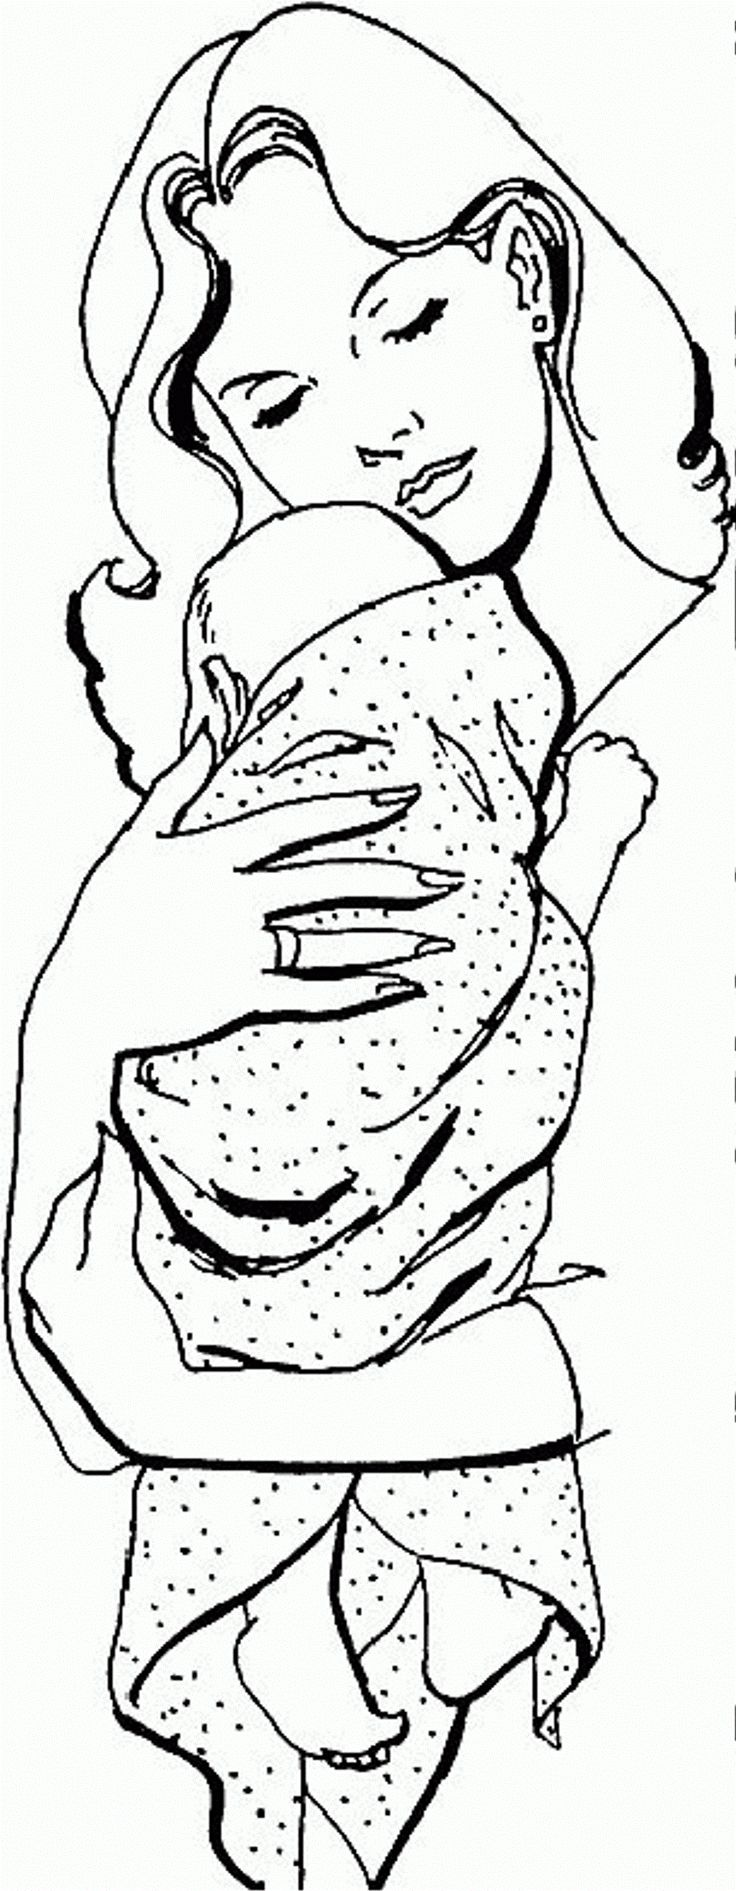 Childrens hospital coloring book - Baby Hugged By Mom Coloring Page Photos Activity At Coloringplus Com